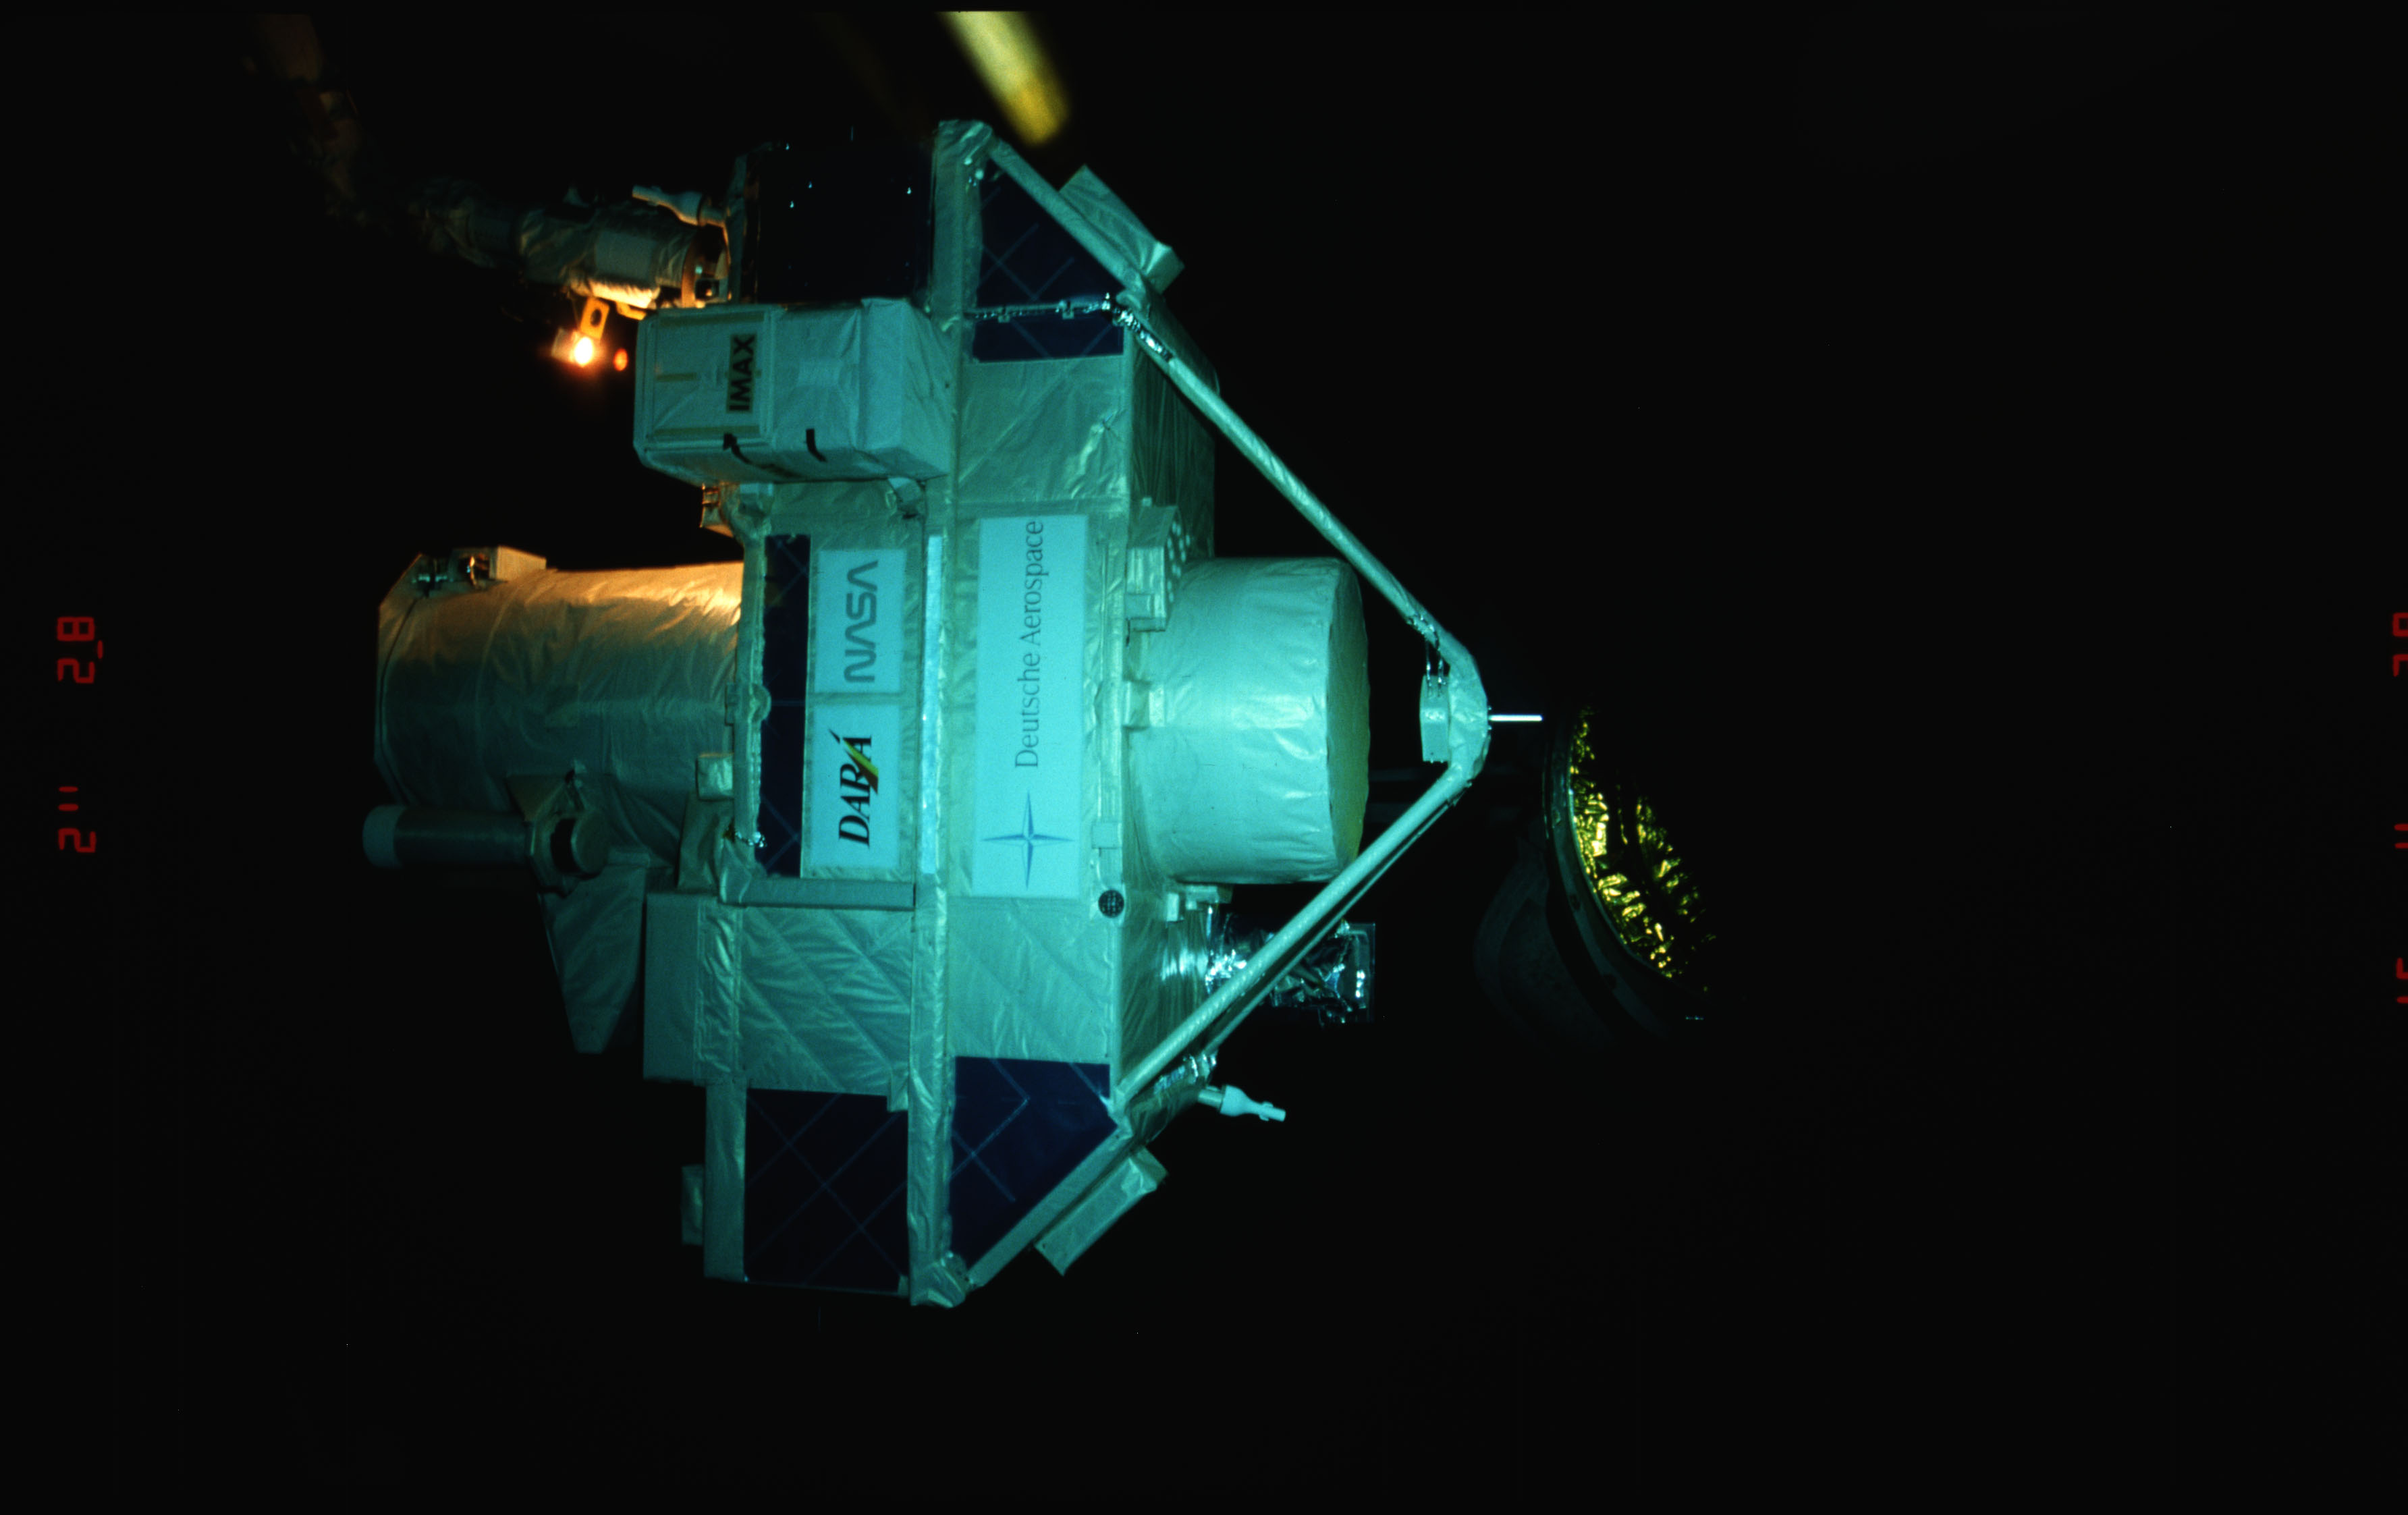 STS051-15-022 - STS-051 - OREFEUS-SPAS: ORFEUS-SPAS hovers over the payload bay on RMS